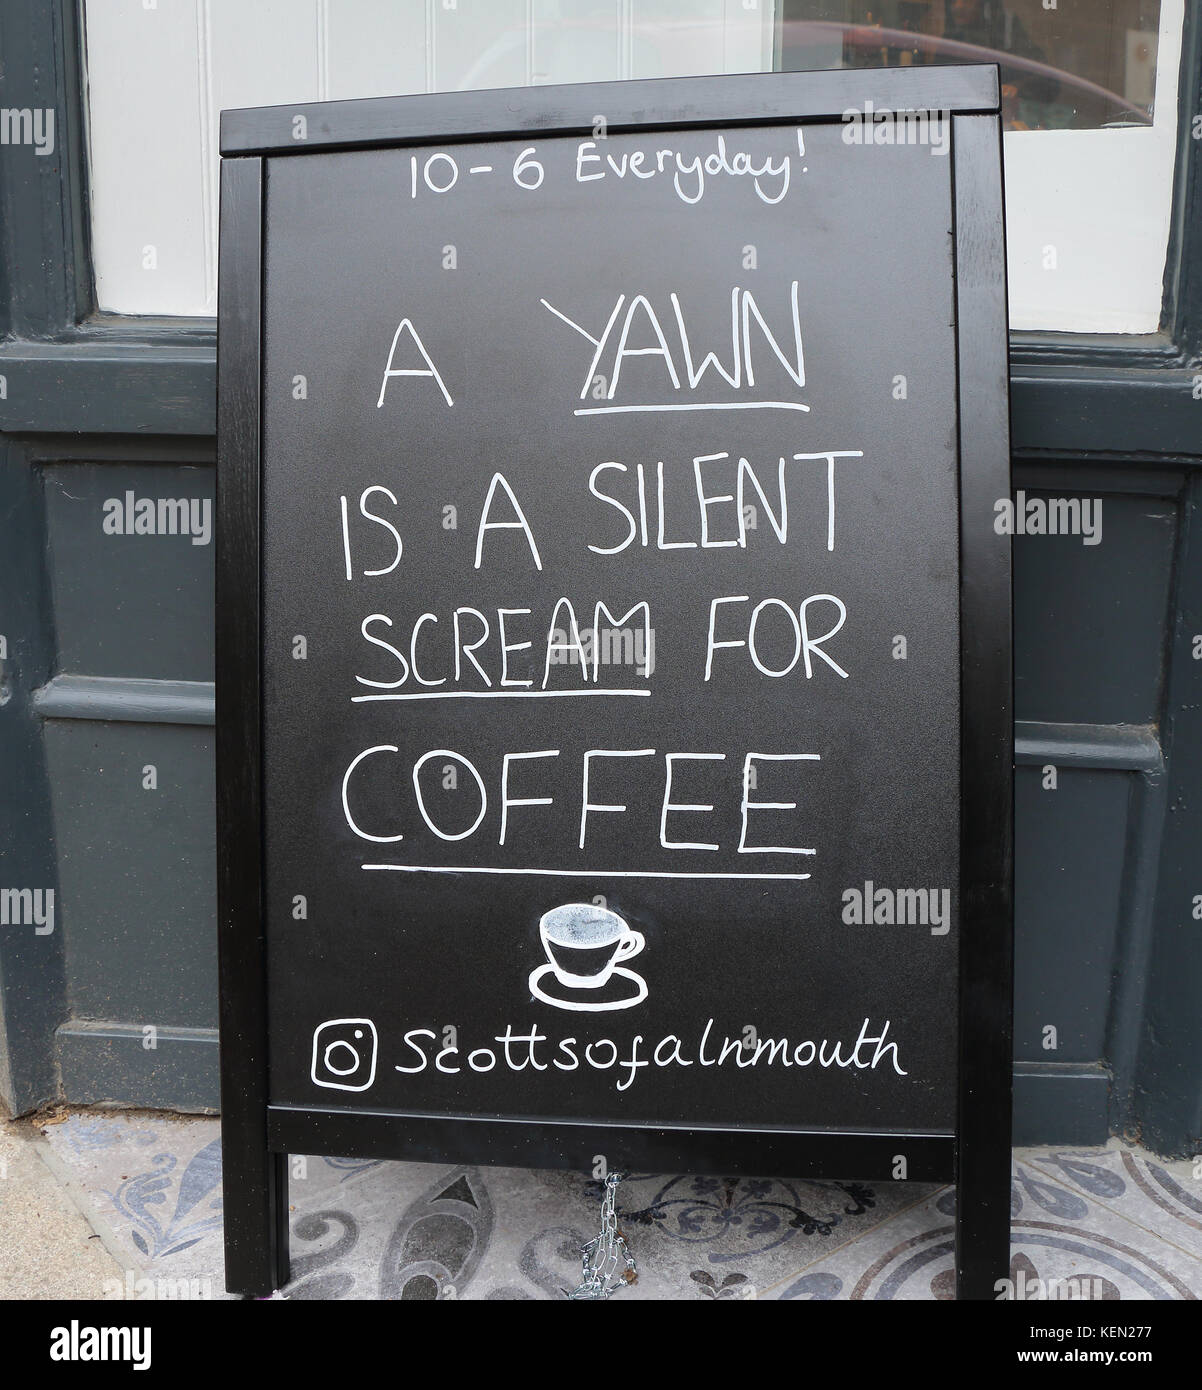 Advertizing board outside a coffee shop in Alnmouth, Northumberland, UK stating A Yawn is a silent scream for coffee - Stock Image